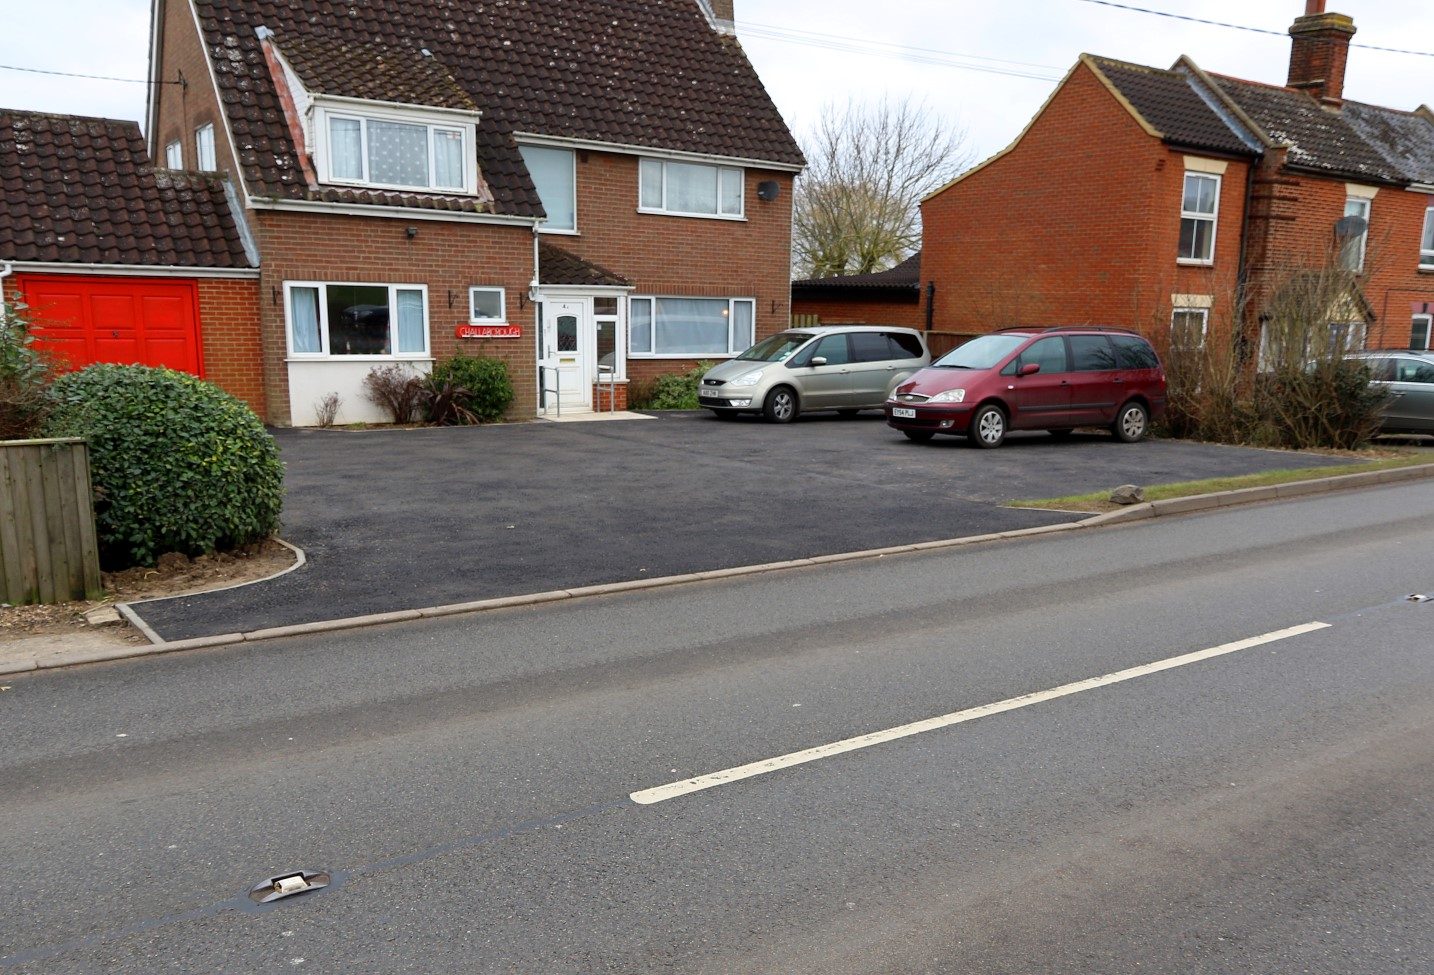 Hot Rolled Asphalt And Tarmac Star Paving Services